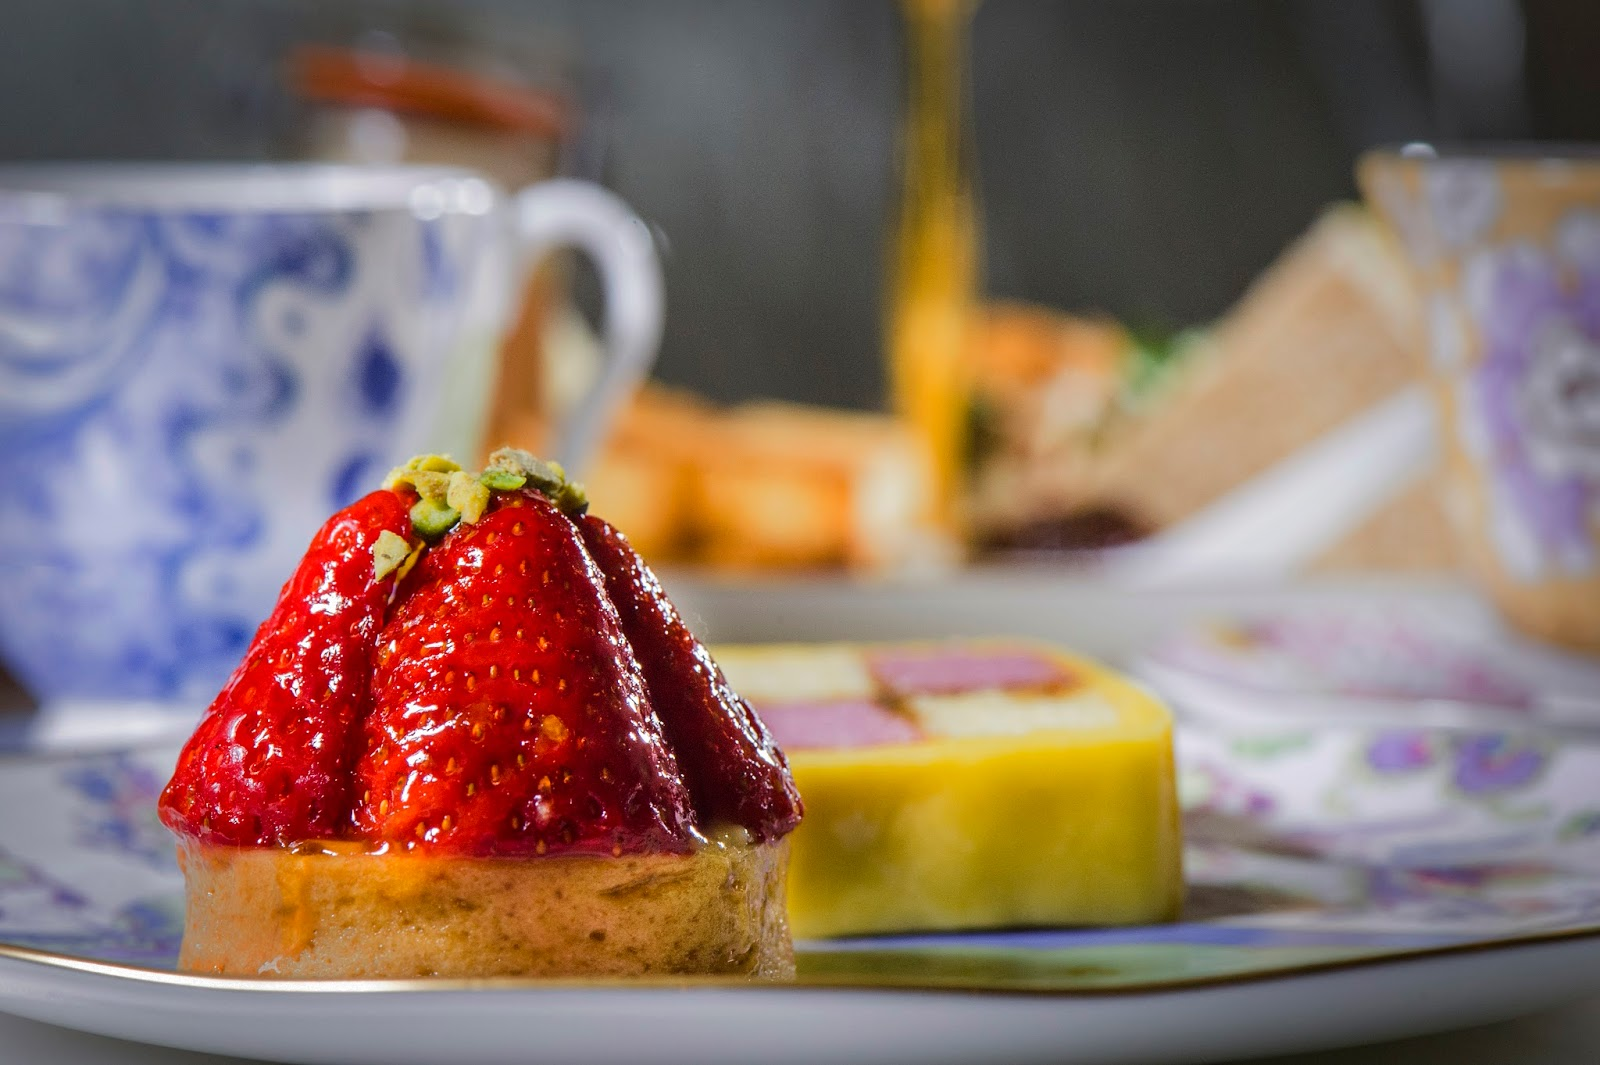 ways to enjoy strawberries - a strawberry dessert on a china plate